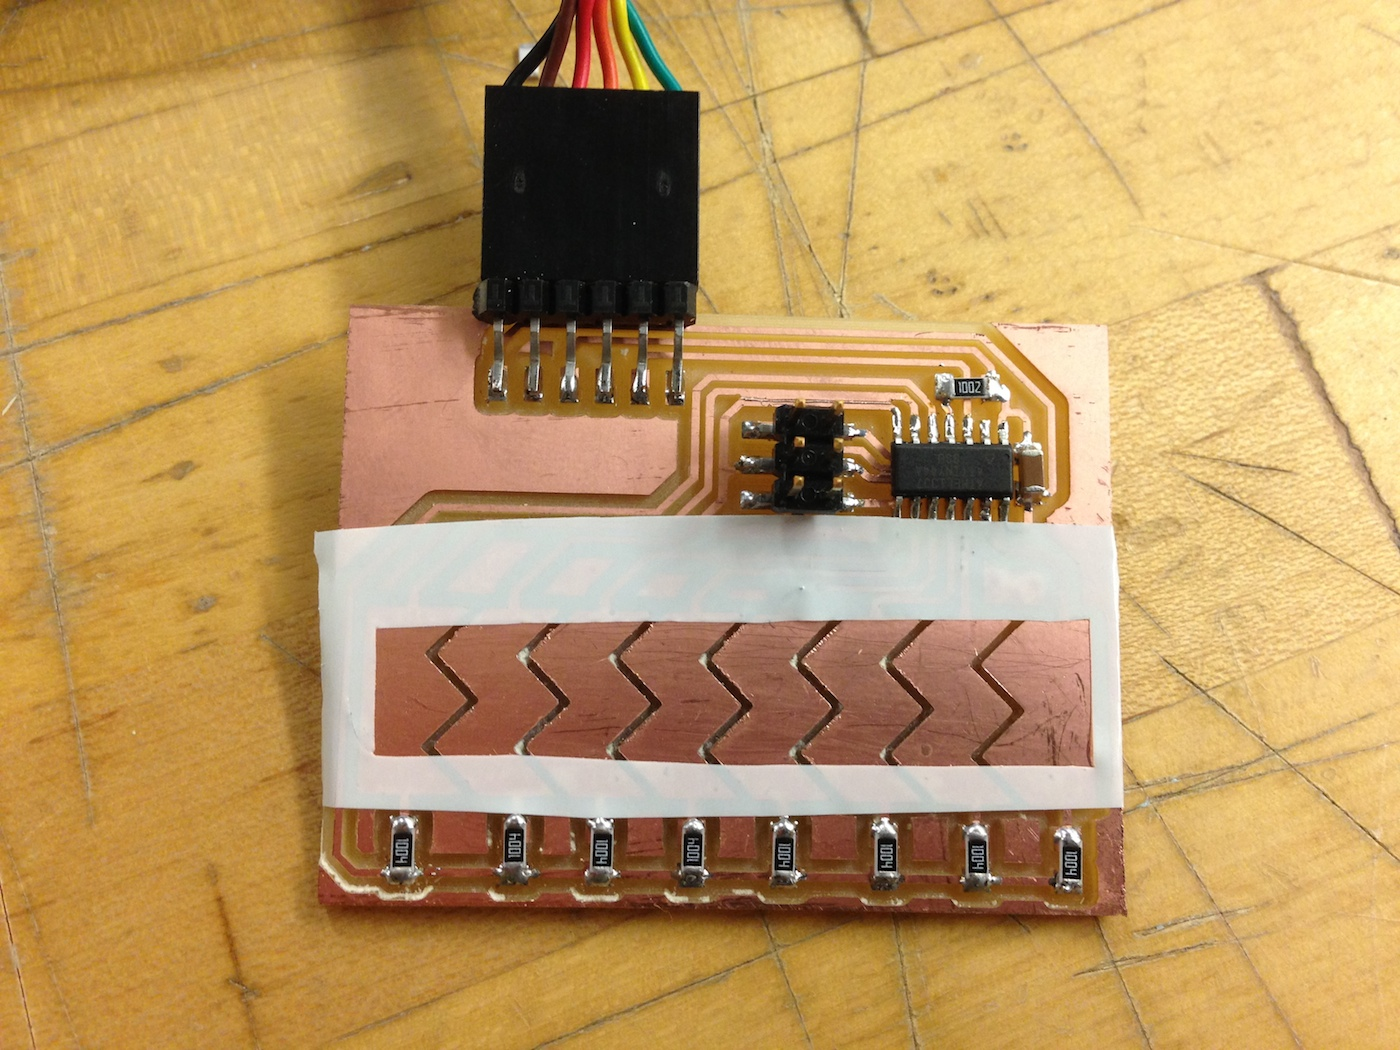 The touch sensor from week 9